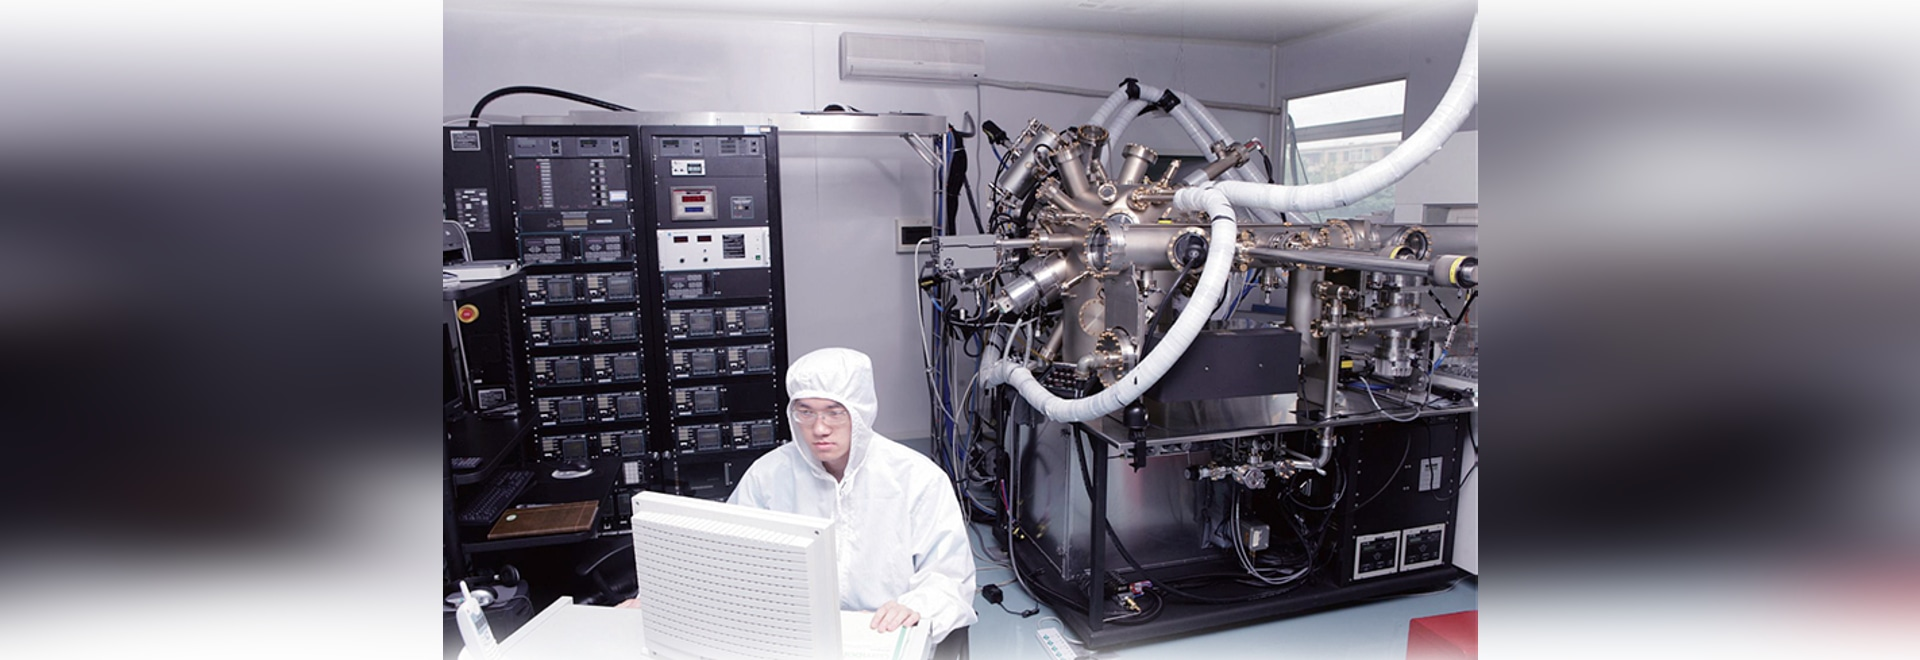 Slip ring revolution in the semiconductor production equipment